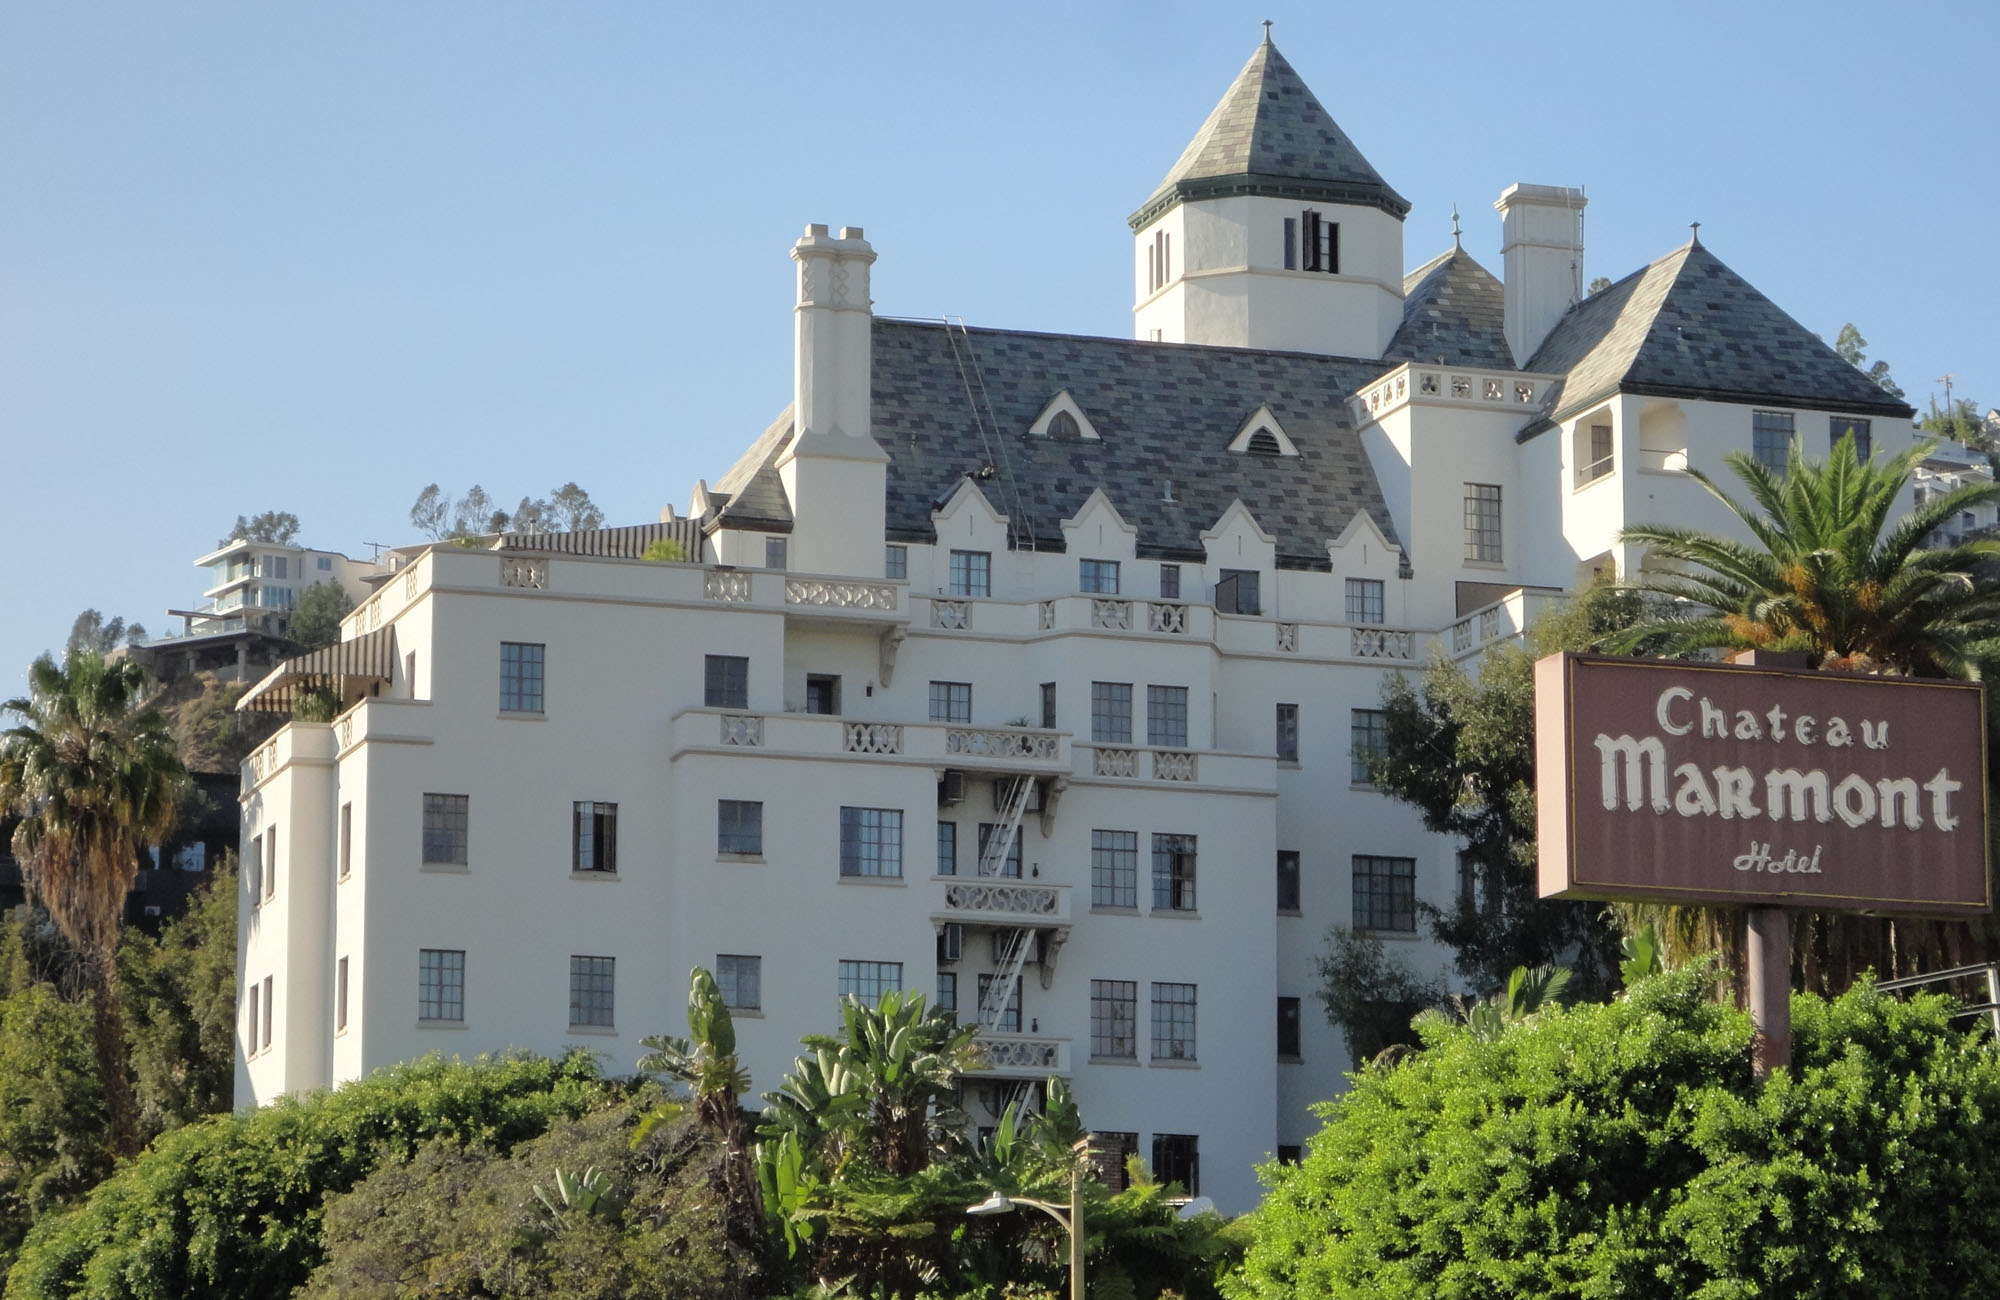 Chateau Marmont Hotel Expert Review | Fodor's Travel